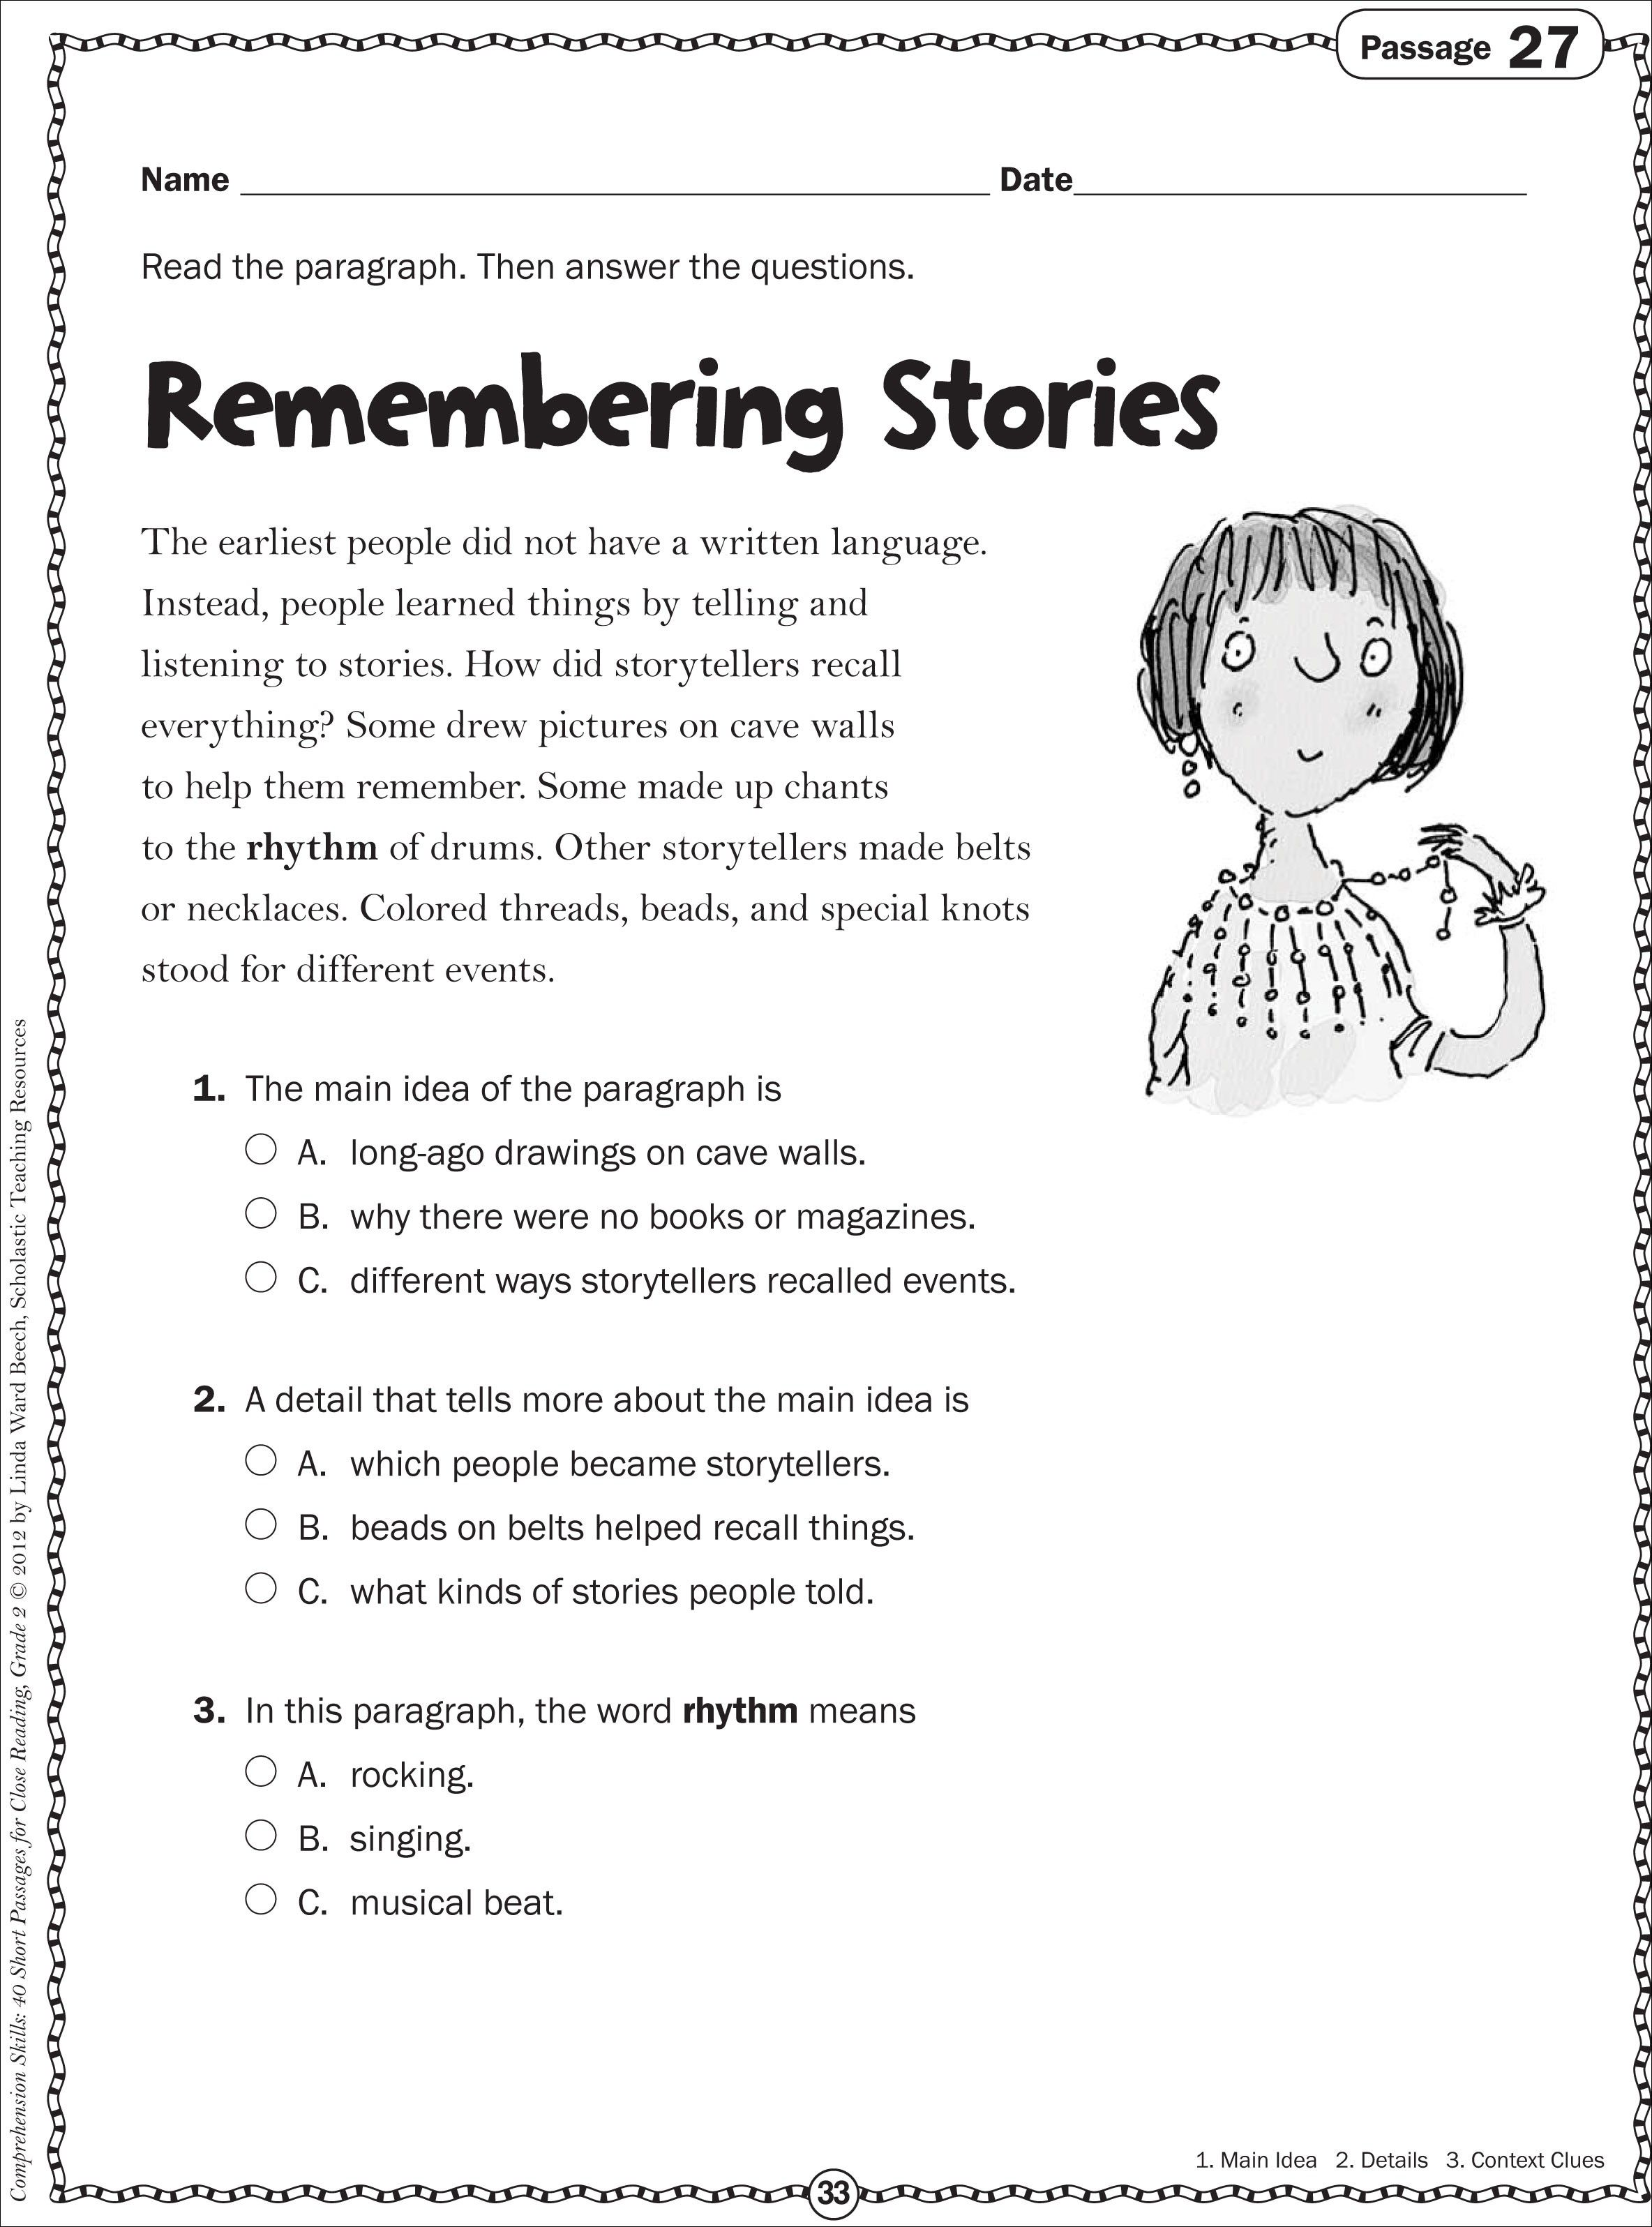 Worksheets Reading Passages Worksheets grade 2 reading passages memarchoapraga school pinterest memarchoapraga